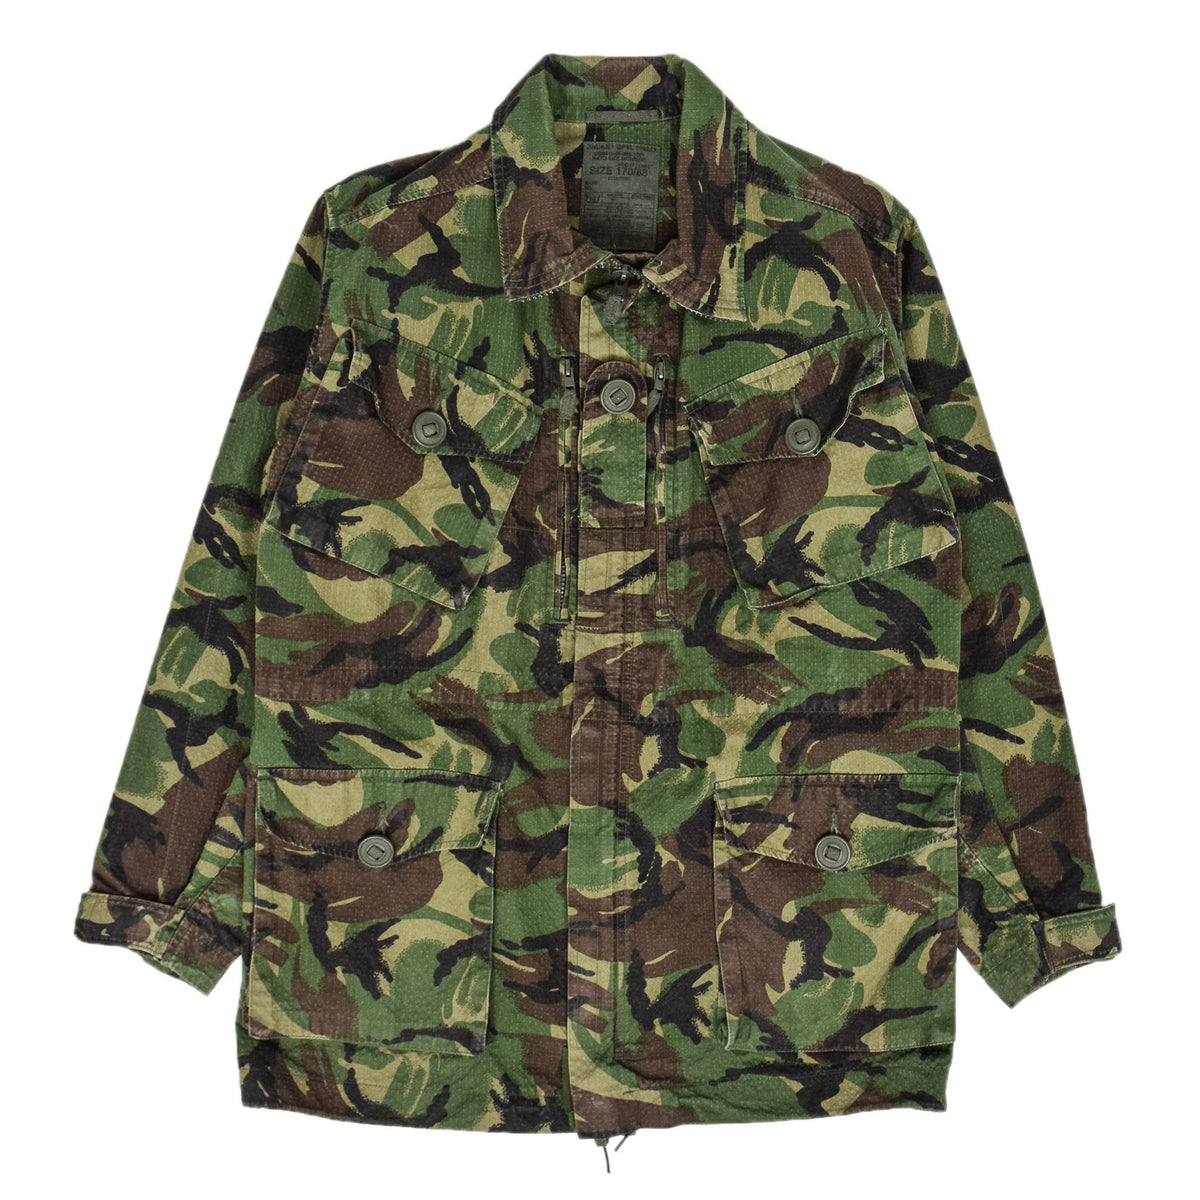 Vintage British Army Combat 95 Woodland Camouflage Coat Field Jacket M front